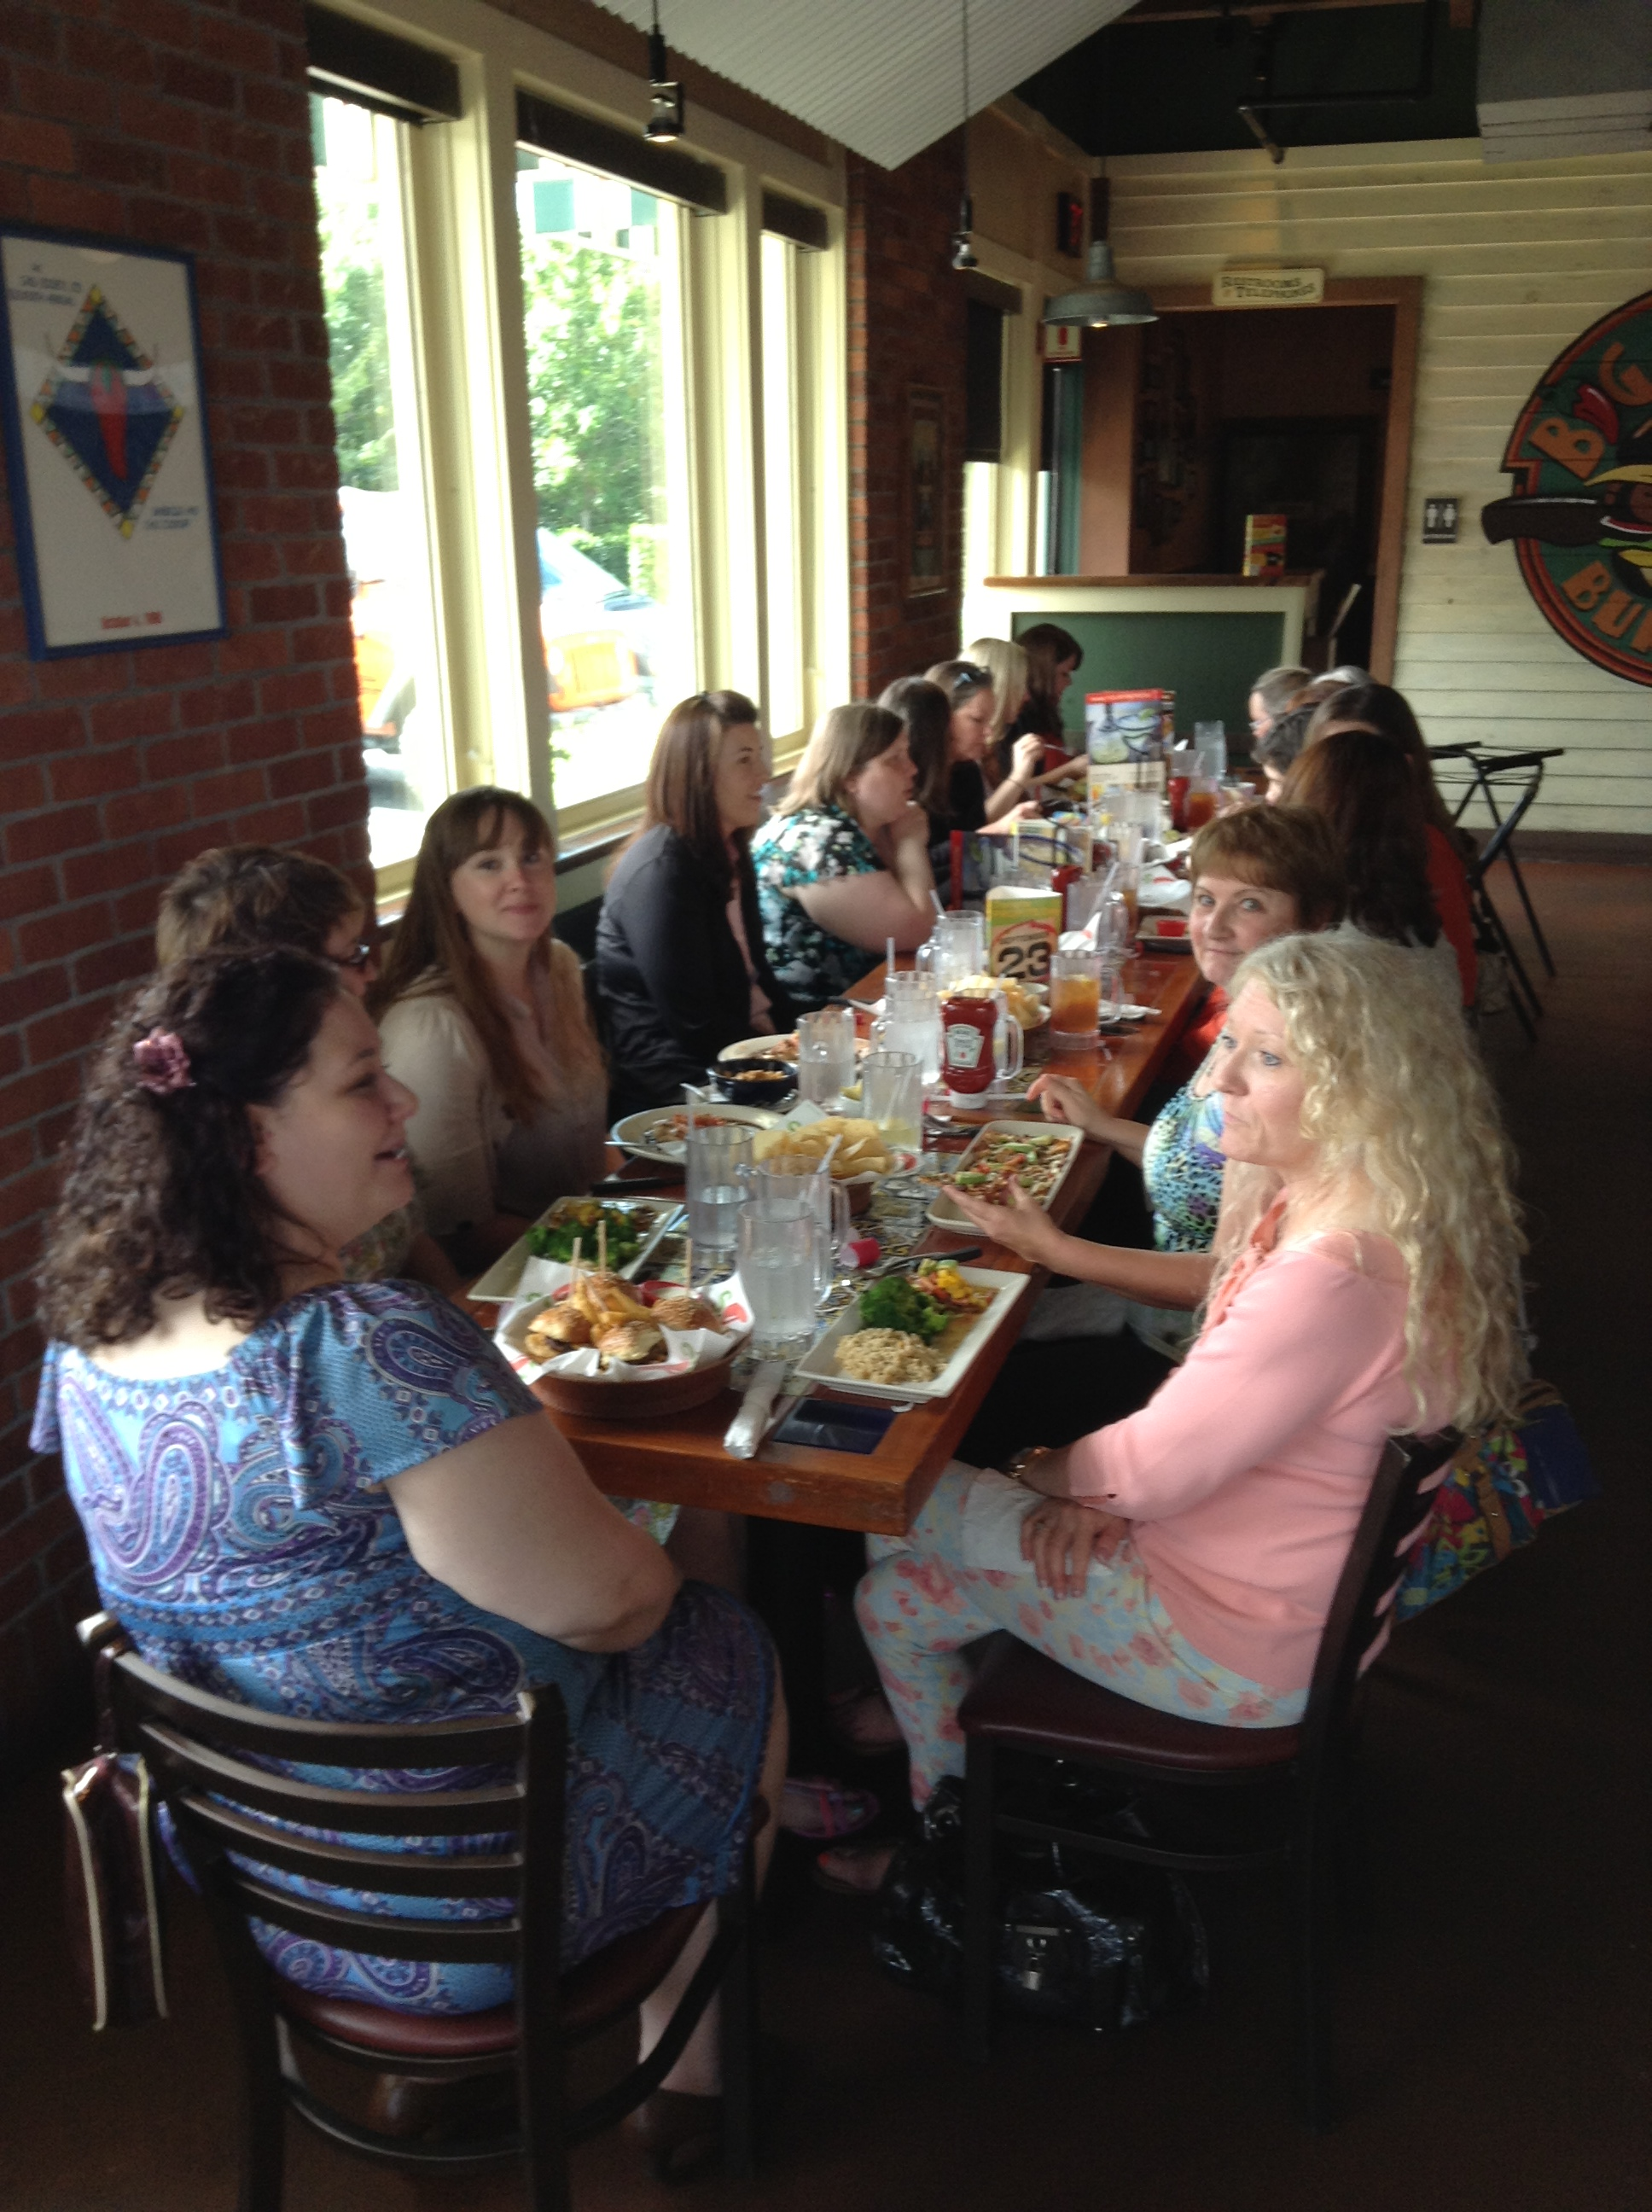 2pm: Lunch with the MCRW at Chili's. P.S. I love Chili's.